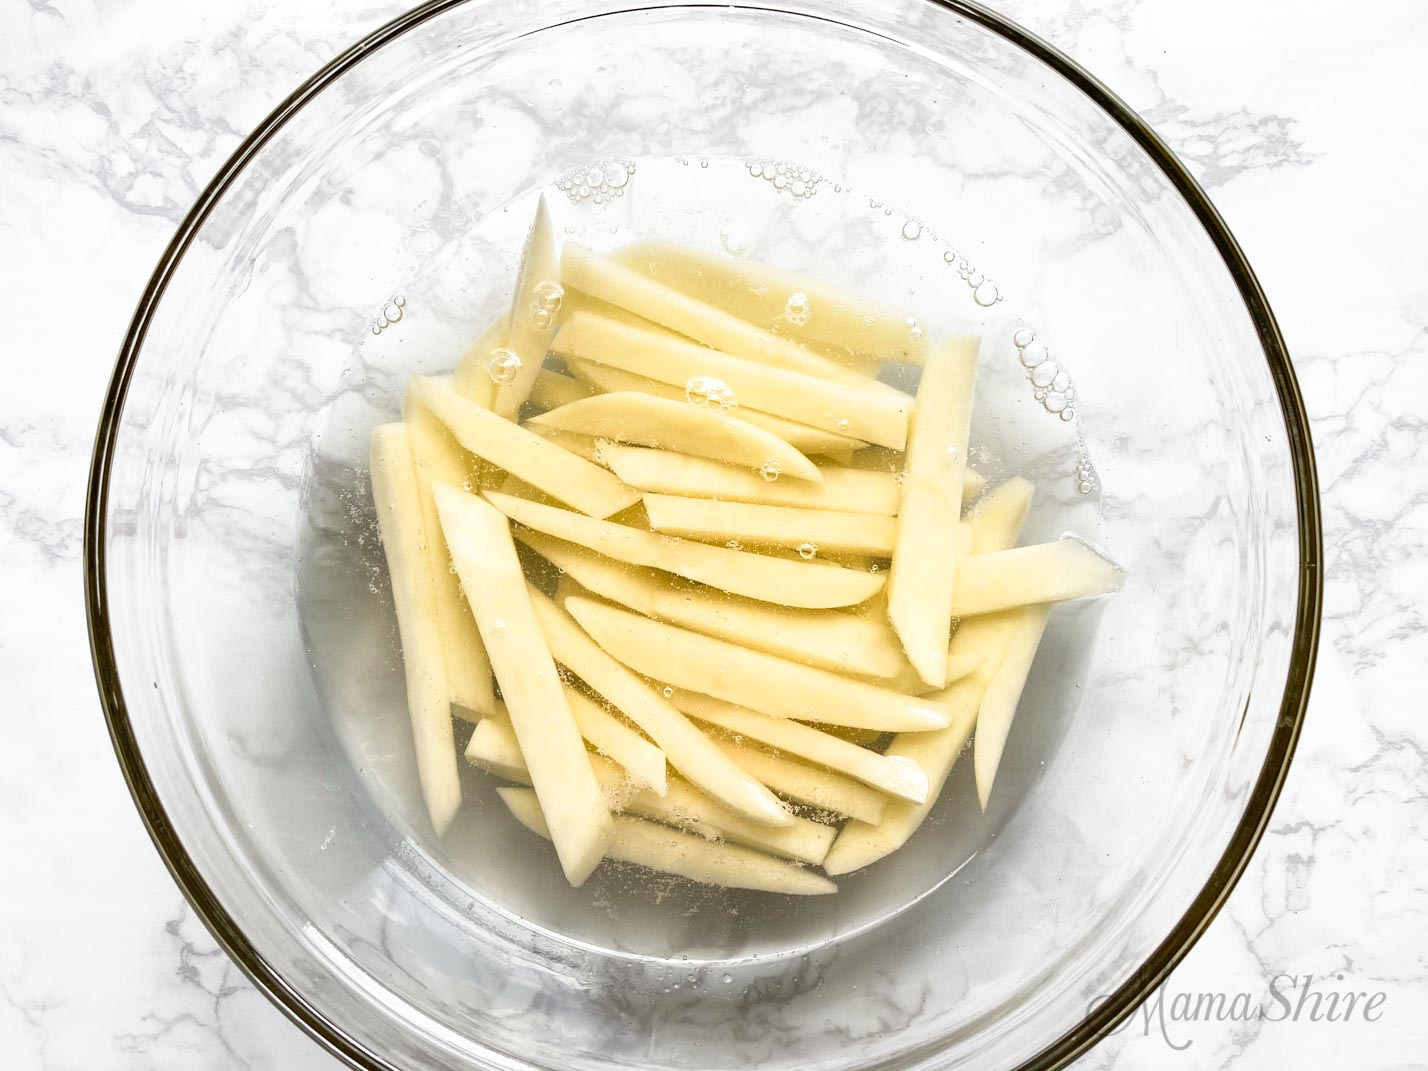 French fries soaking in salt water to remove the starchiness of the potatoes.